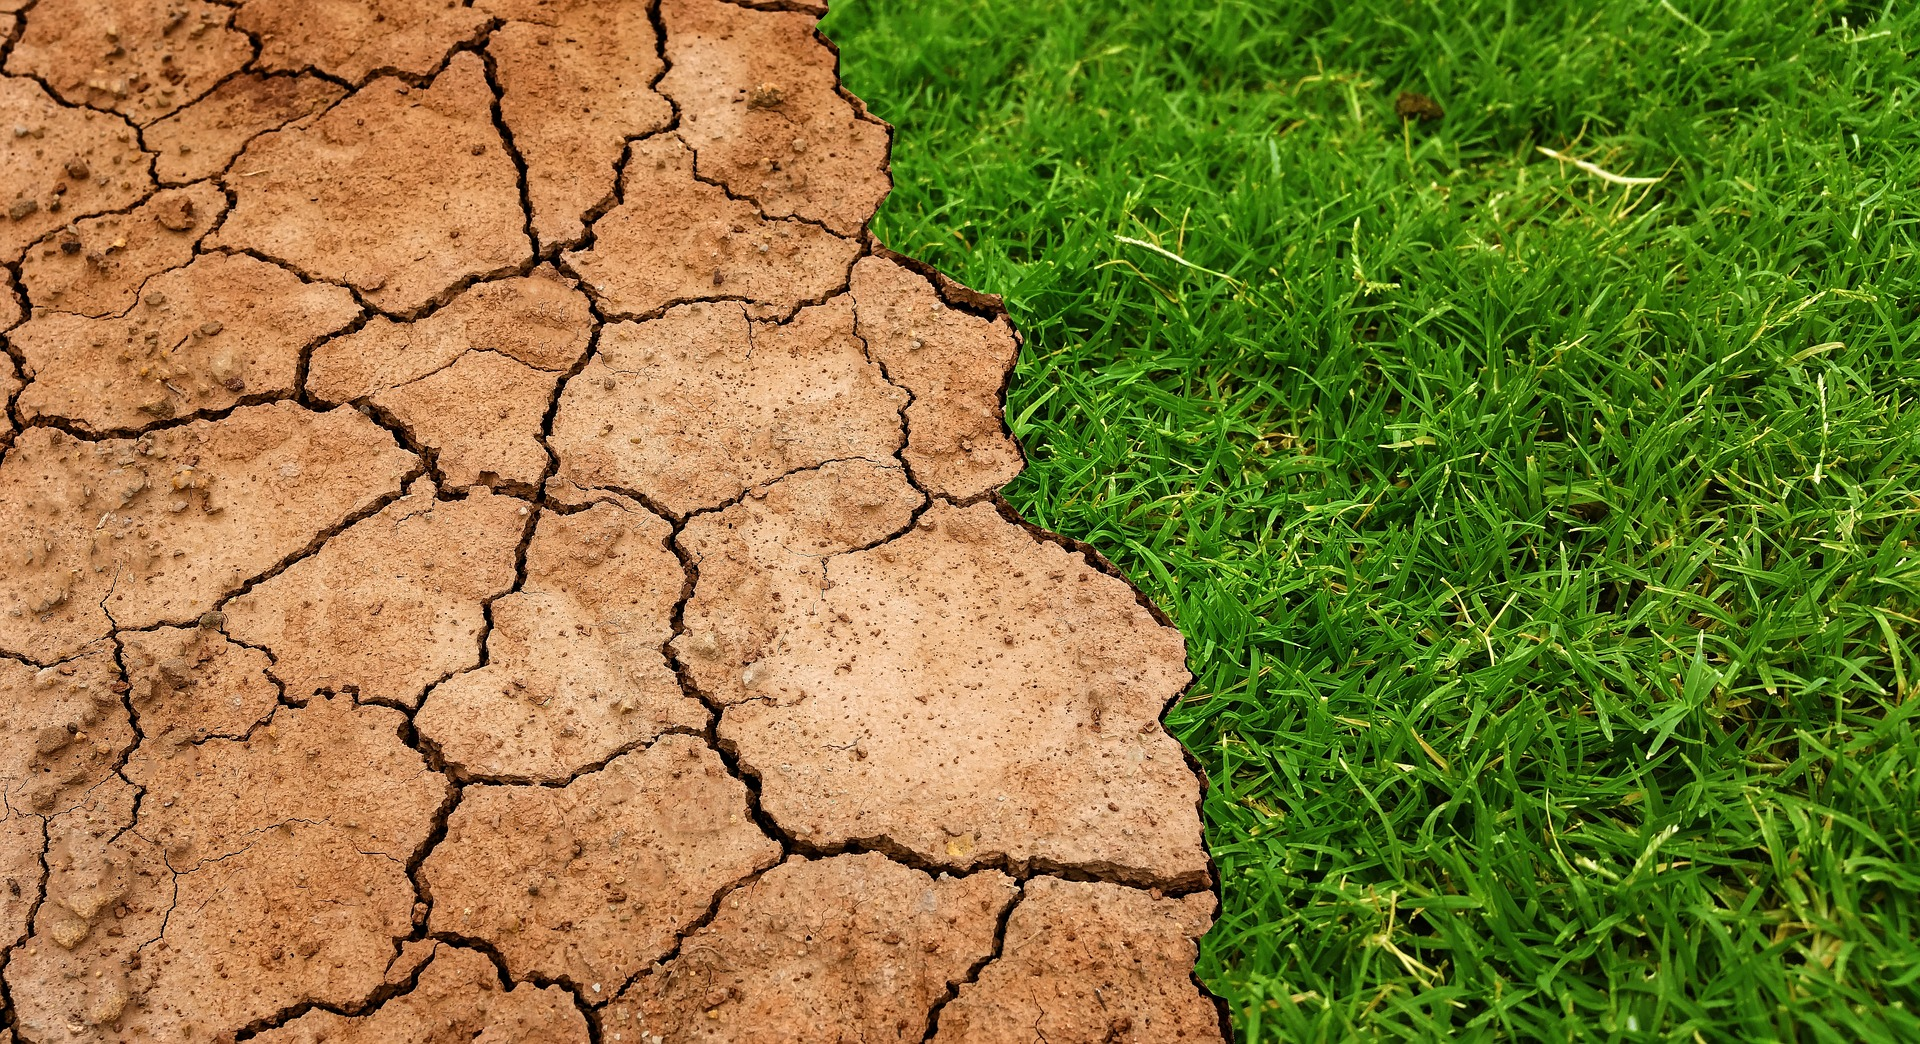 Why soil becomes water repellent (hydrophobic) – and what to do about it